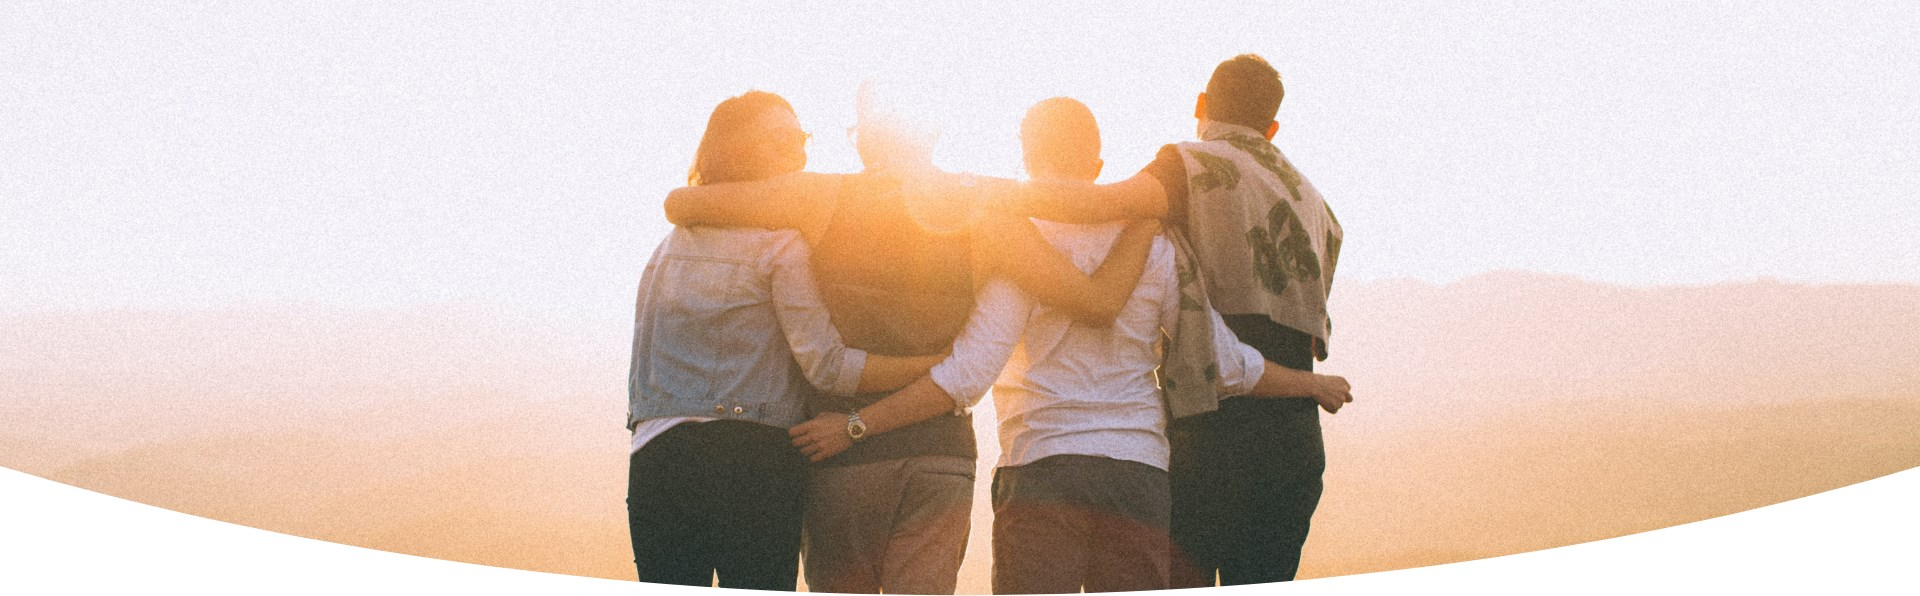 4 people hug each other, seen from behind, standing, looking into the horizon